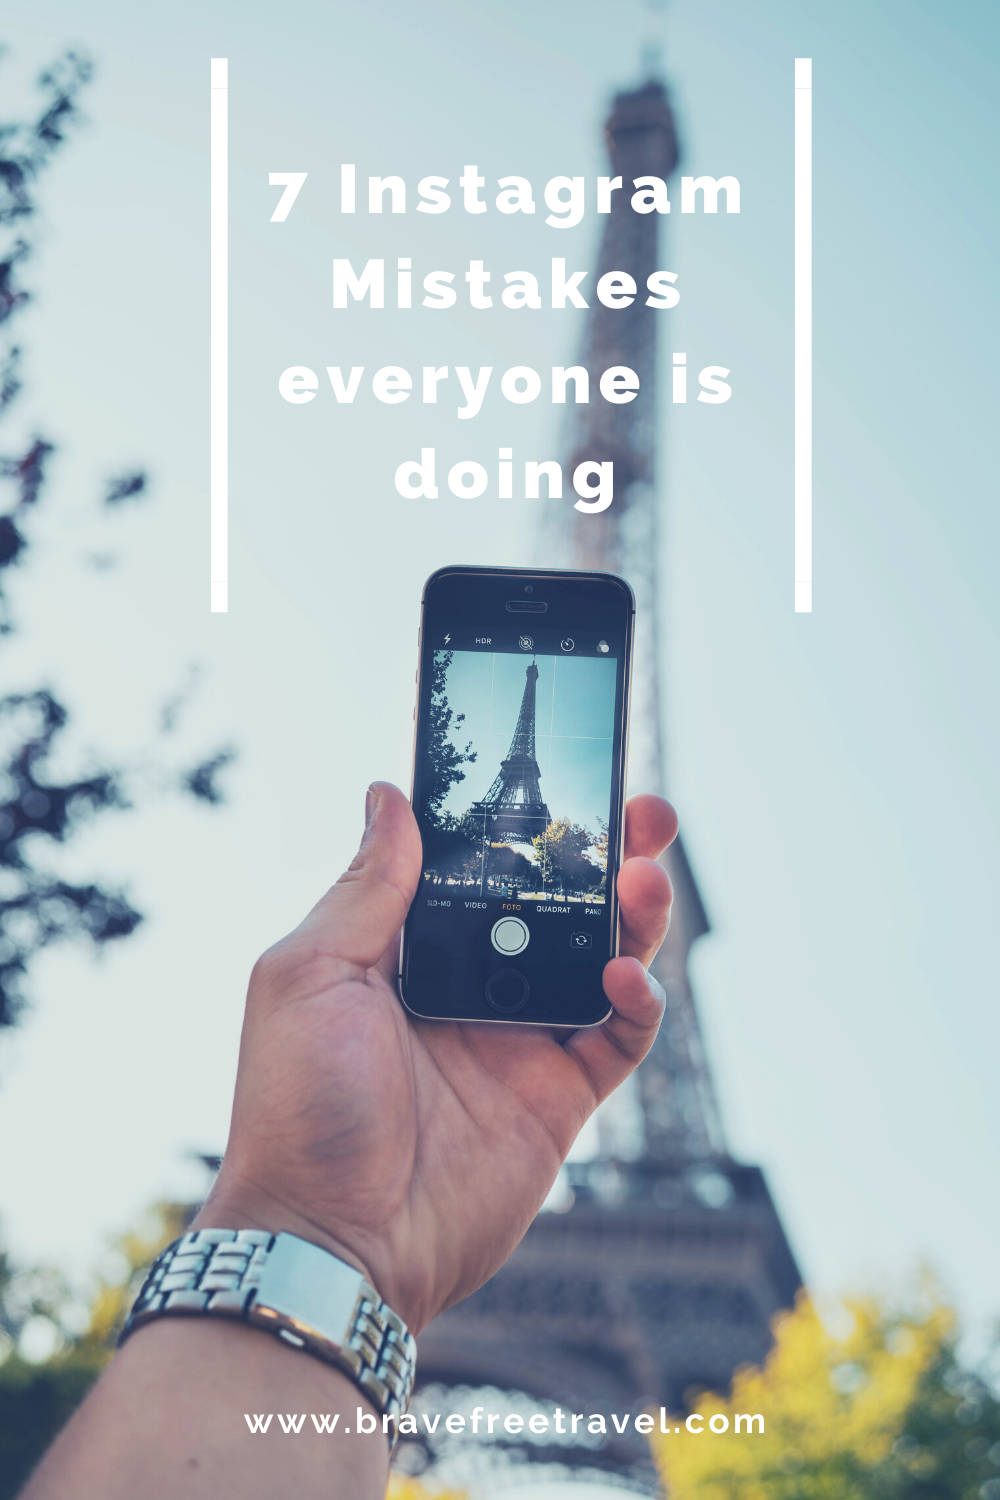 7 instagram mistakes everyone is doing